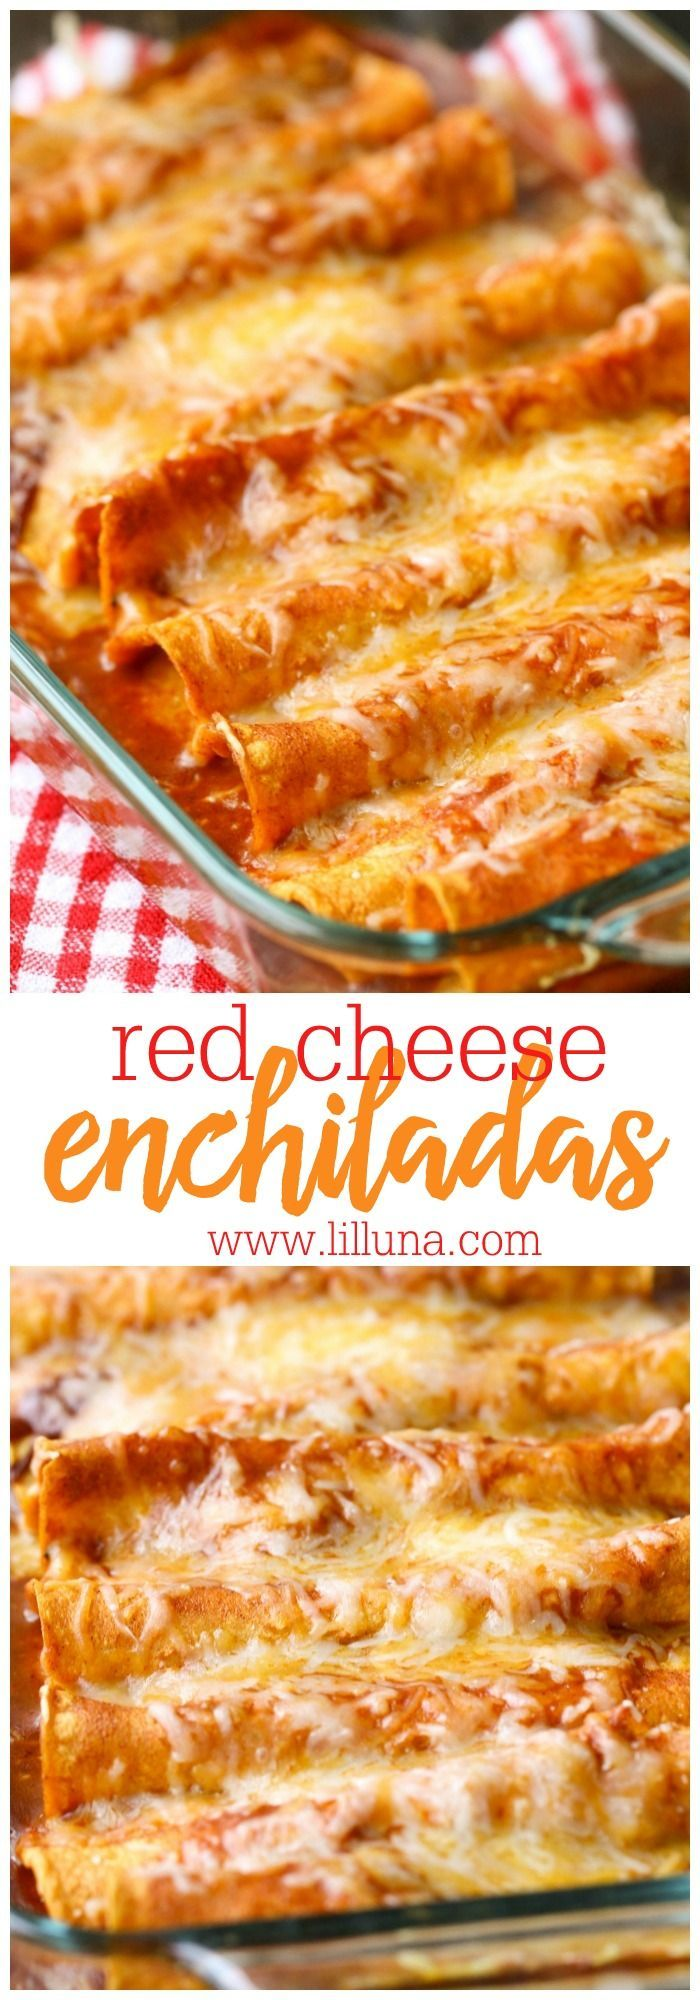 Restaurant-Style Red Cheese Enchiladas - an old family favorite recipe that is simply the best. Corn tortillas filled with cheese, tomato sauce, chile puree, salt & garlic pepper and topped with more  (Cheese Making Salts)